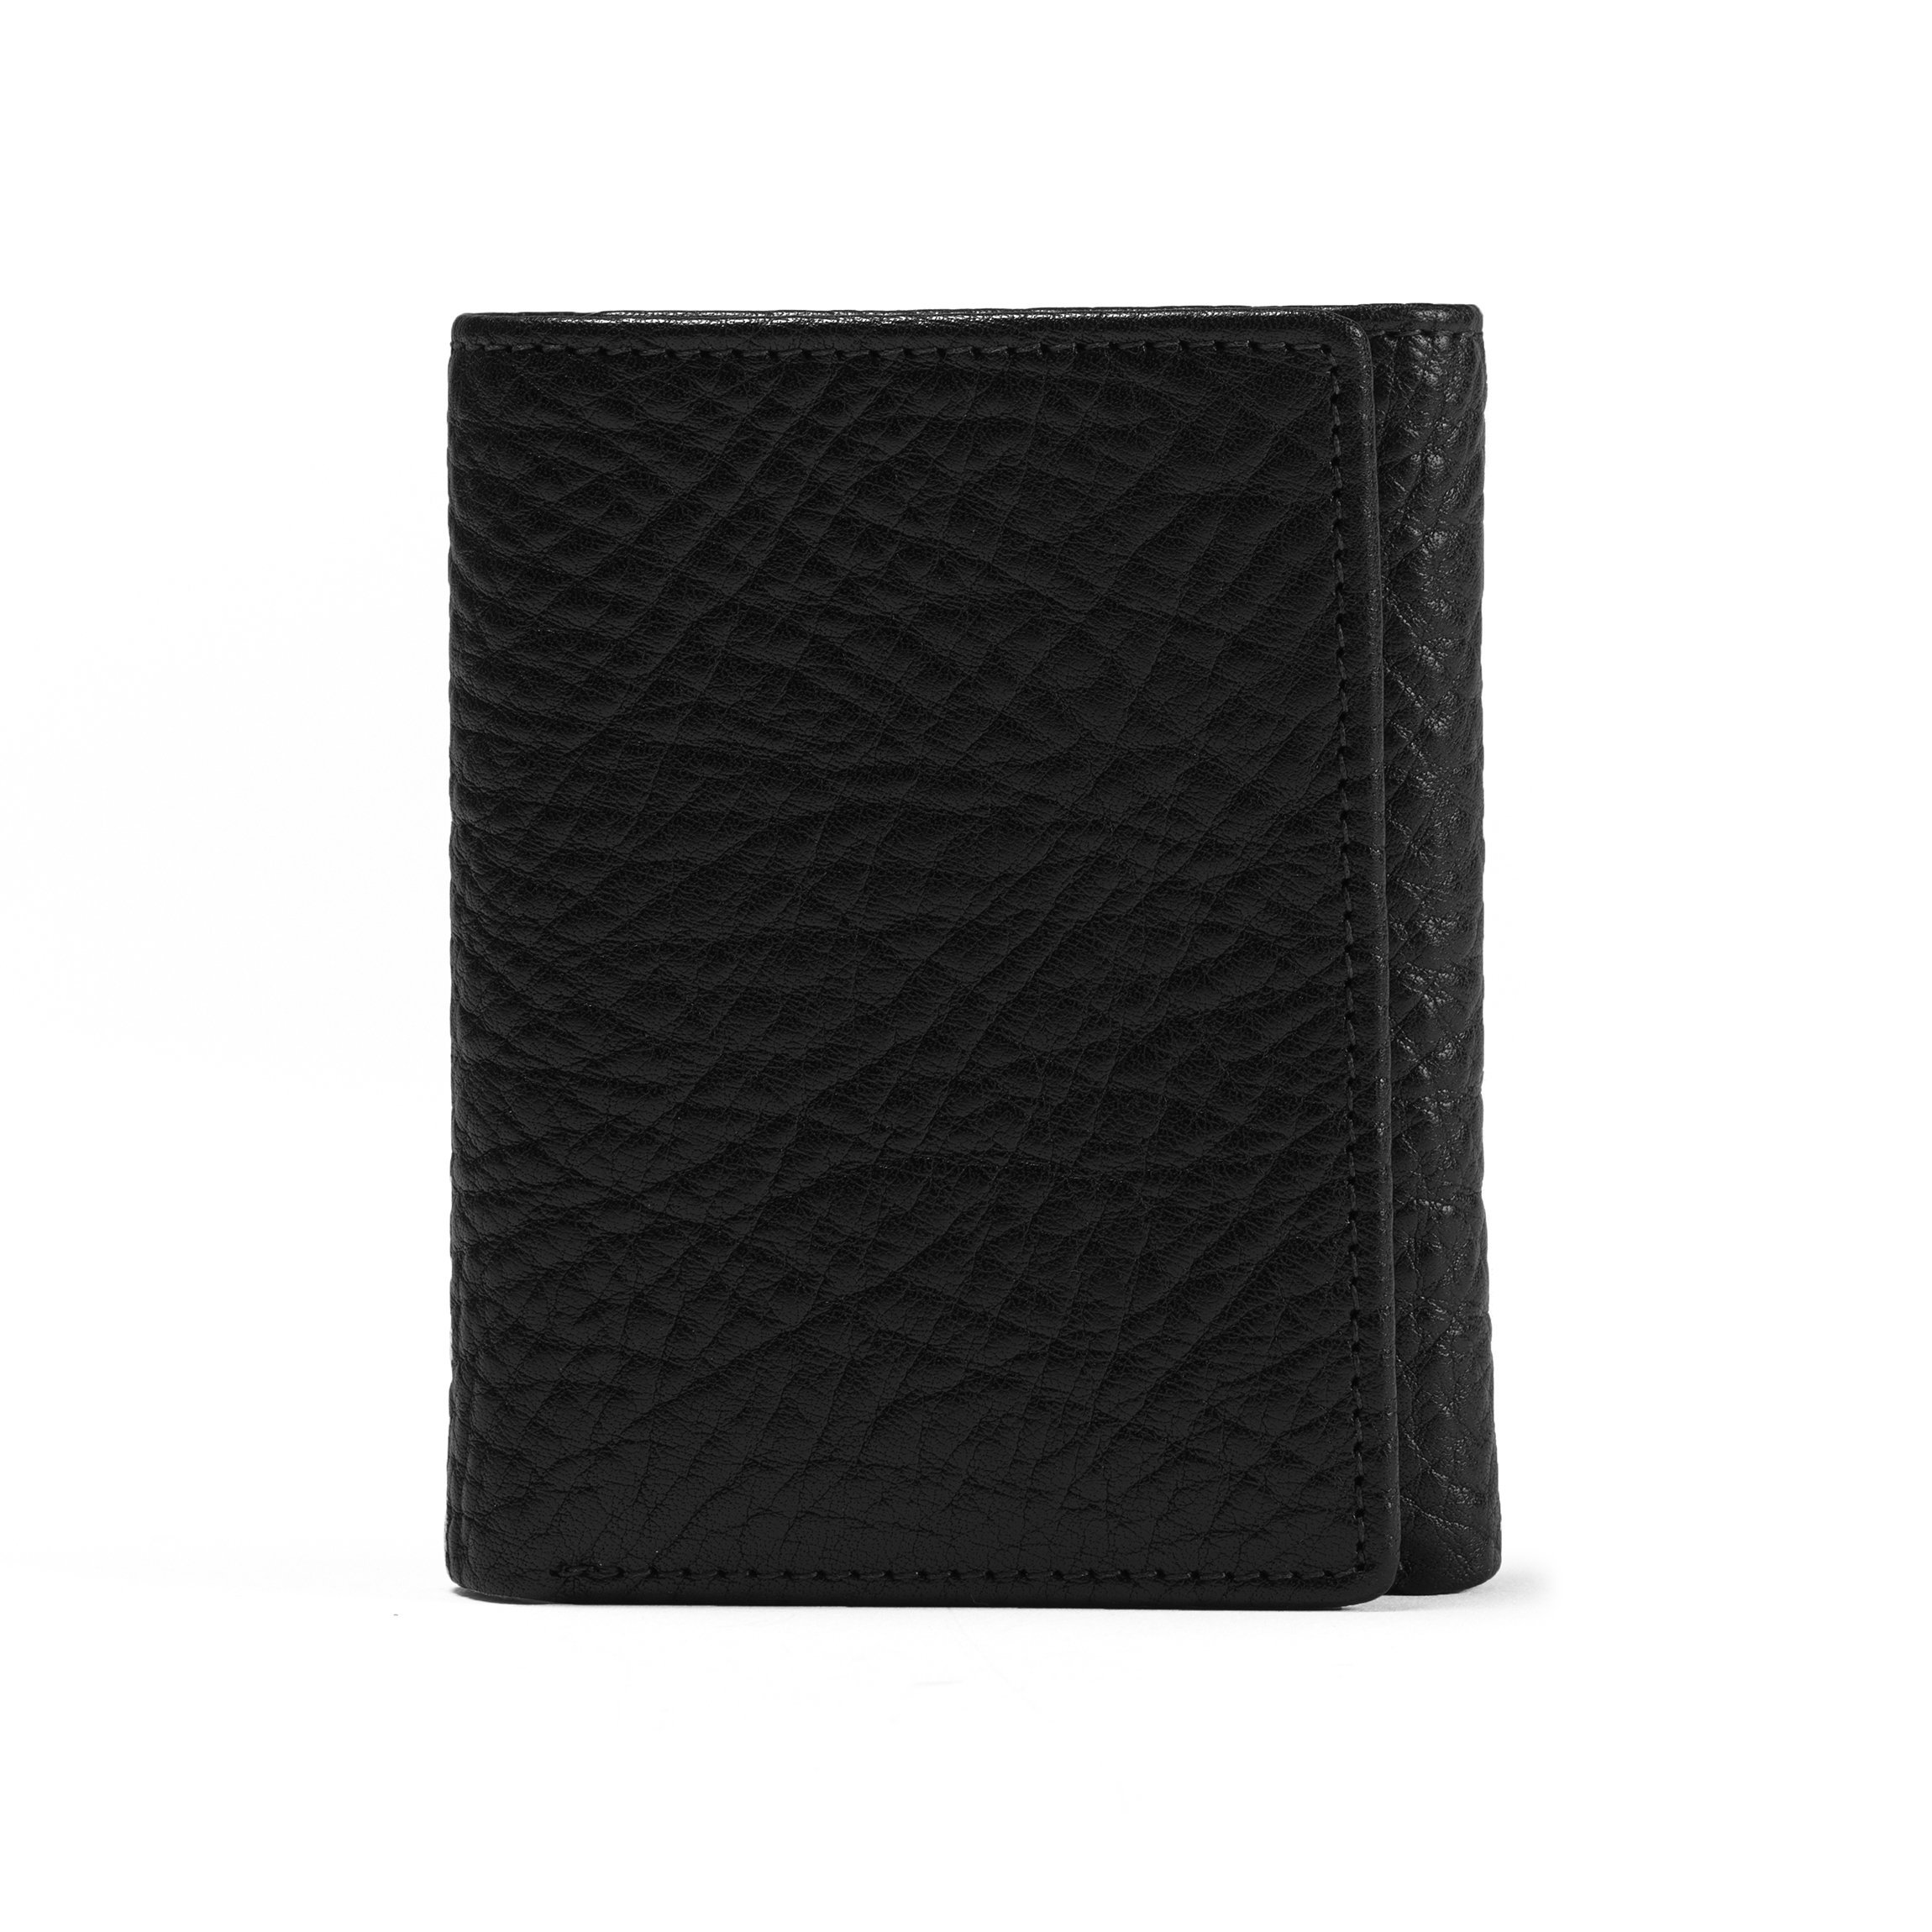 Trifold with Card Wallet - Full Grain Italian Leather Leather - Ebony (black) by Leatherology (Image #6)